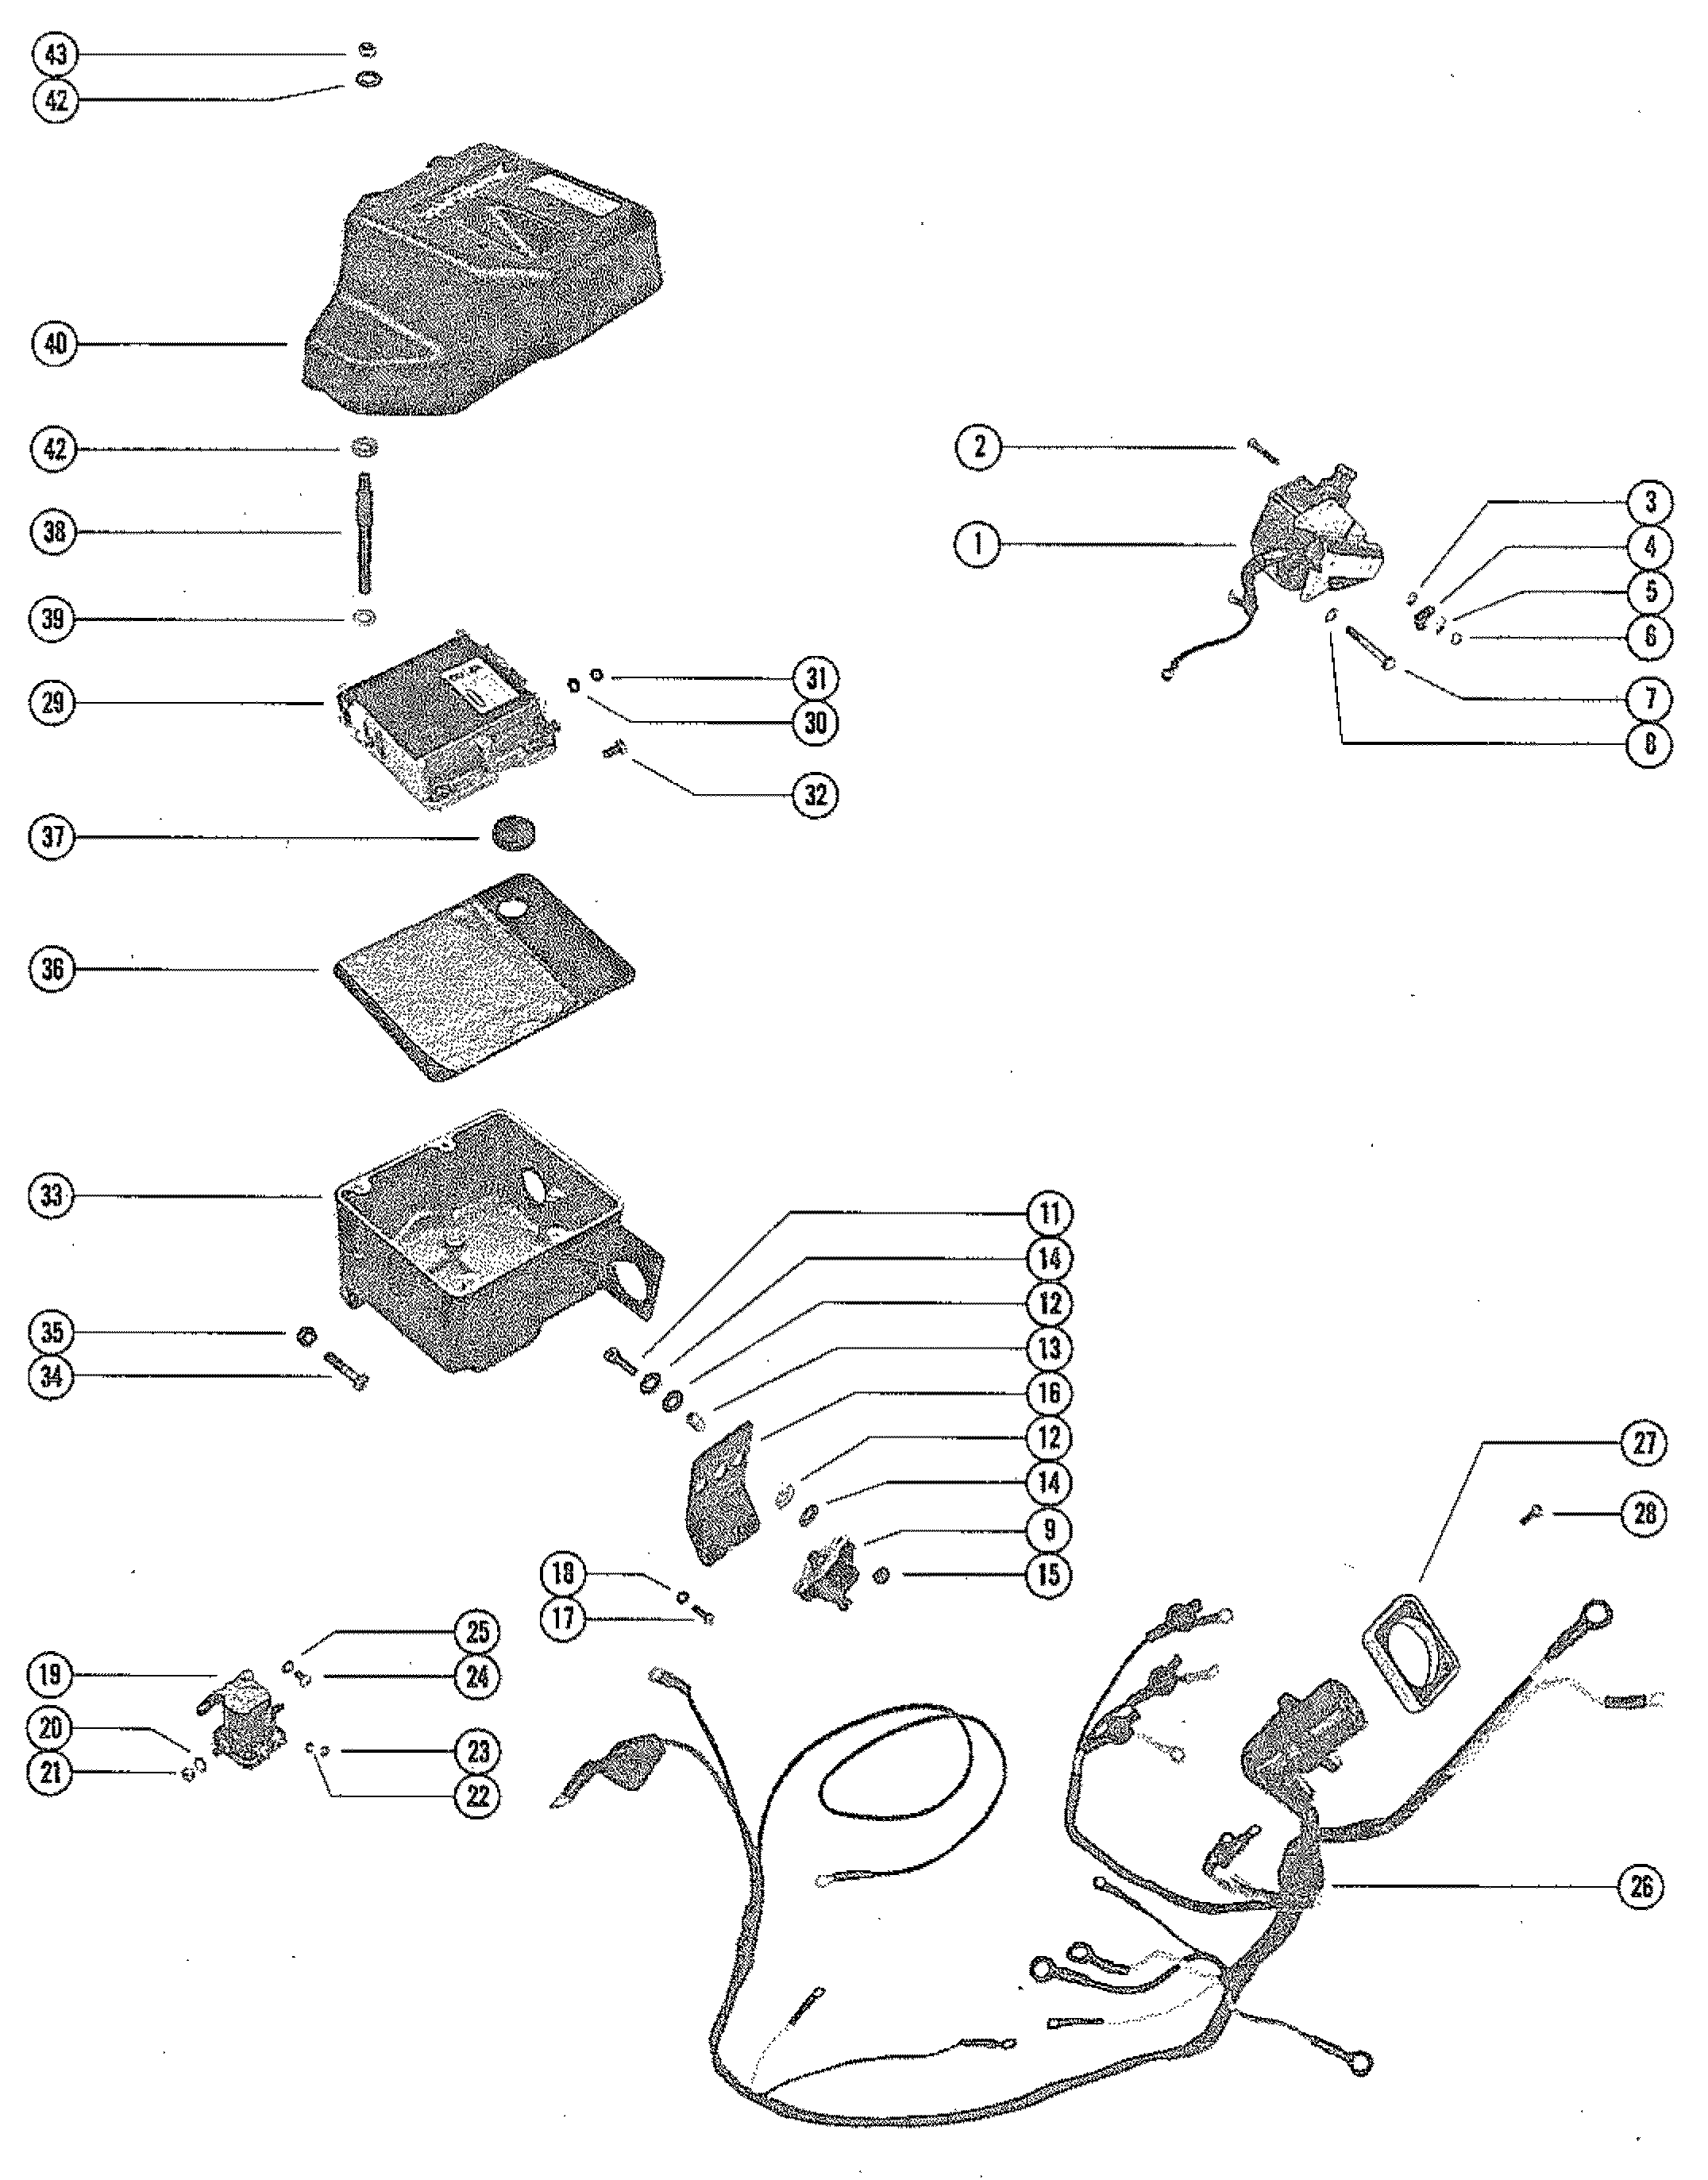 A8 1997 mercruiser 454 wiring diagram mercruiser cooling system mercruiser wiring harness at gsmportal.co